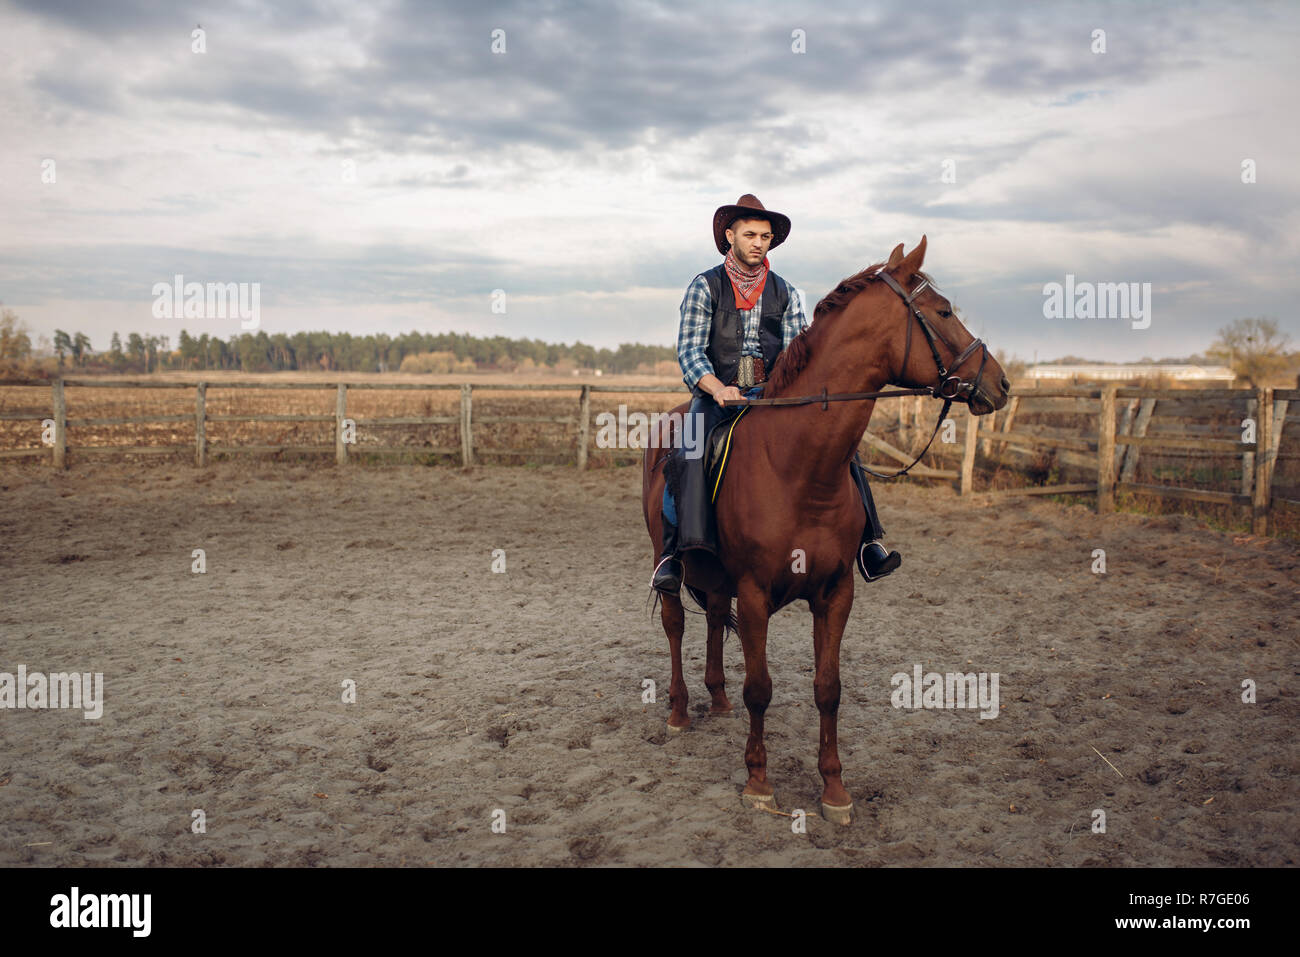 Cowboy Riding A Horse On A Ranch Western Vintage Male Person On Horseback Wild West Adventure Stock Photo Alamy